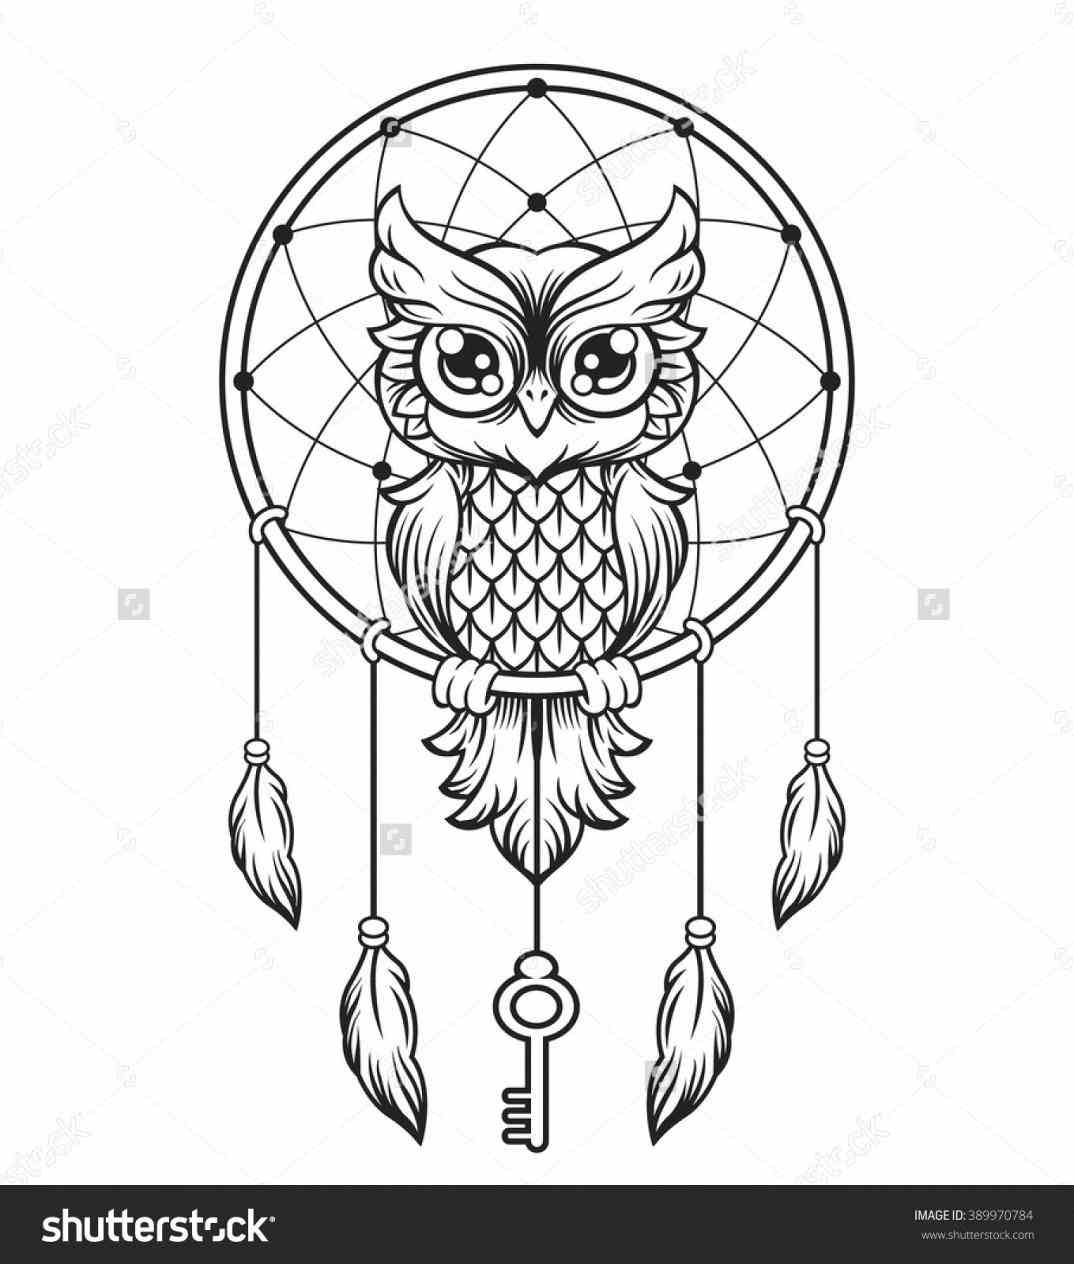 1074x1264 Dream Catcher Drawings Easy